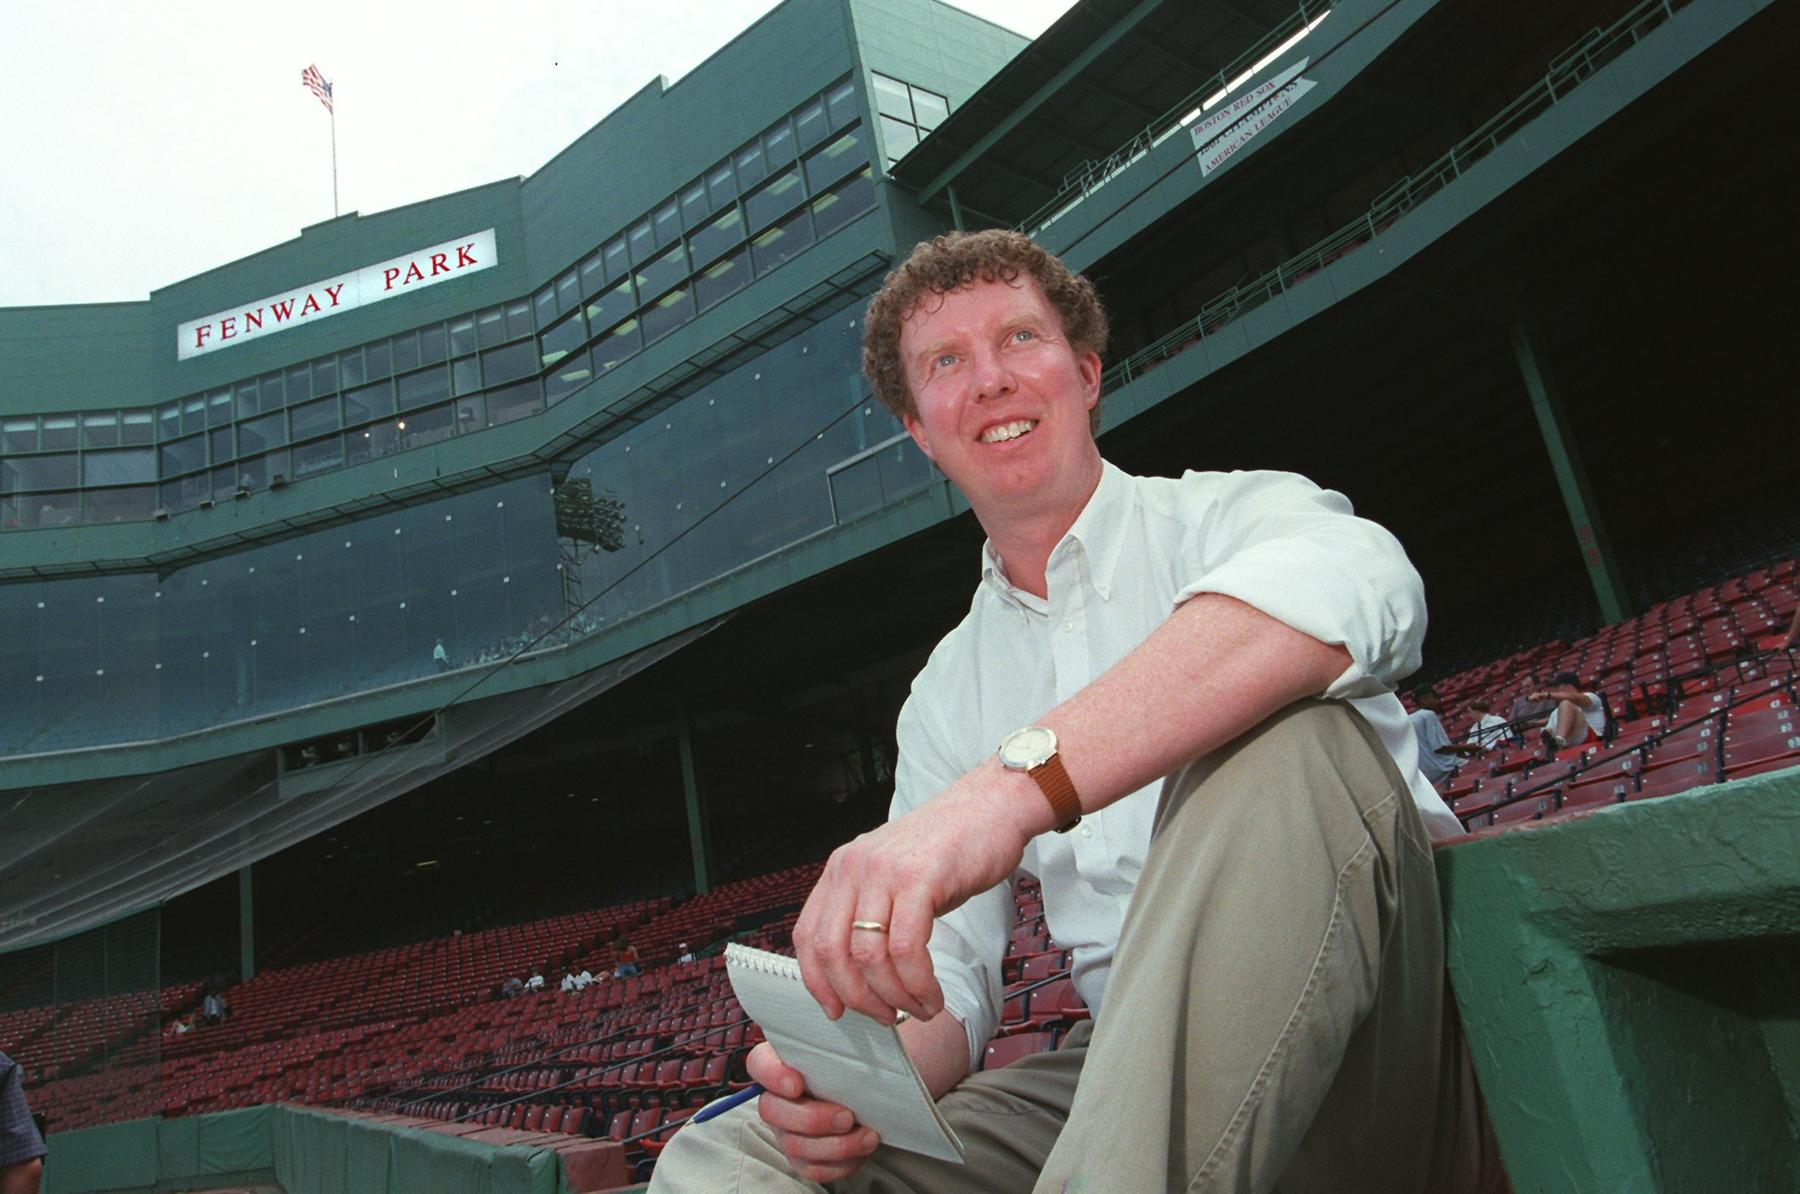 """2016 J.G. Taylor Spink Award winner Dan Shaughnessy has been covering the Red Sox since joining <em>The Boston Globe</em> in 1981. He is credited with coining the term """"Red Sox Nation"""" to describe the team's fervent fan base."""